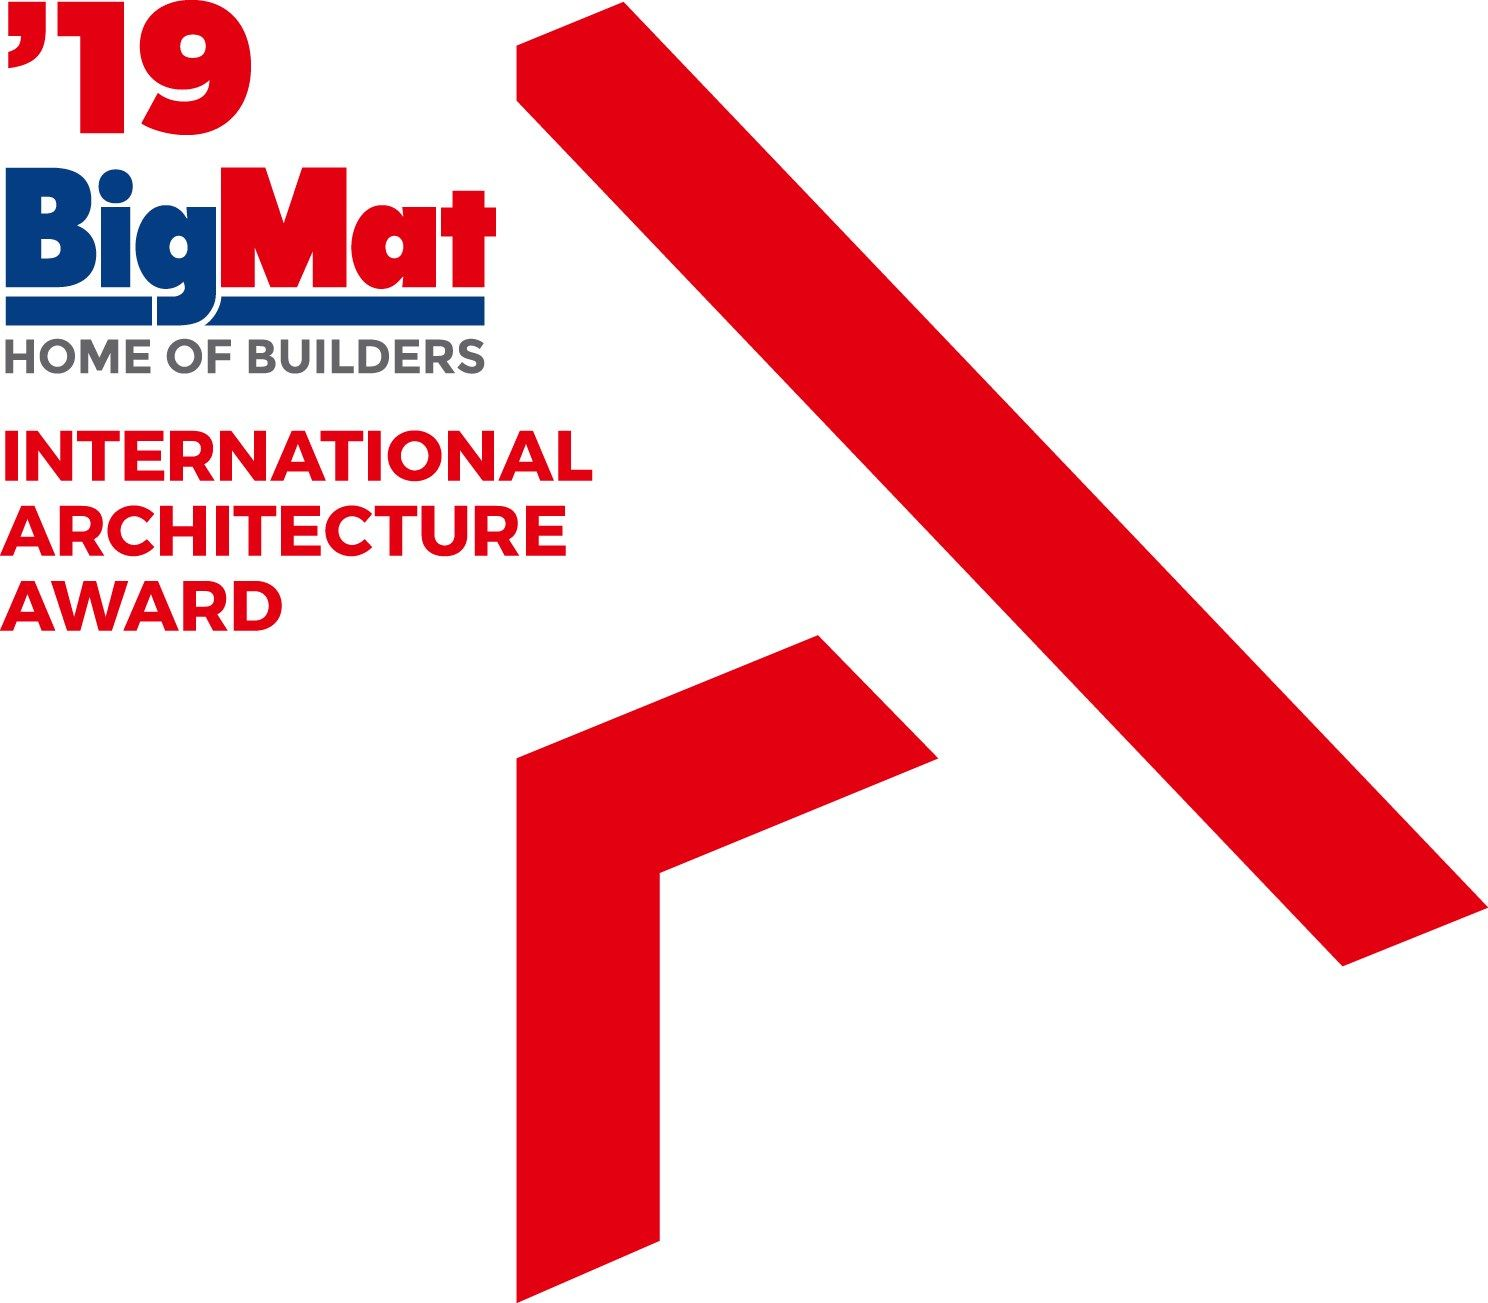 Al via la quarta edizione del BIGMAT INTERNATIONAL ARCHITECTURE AWARD '19